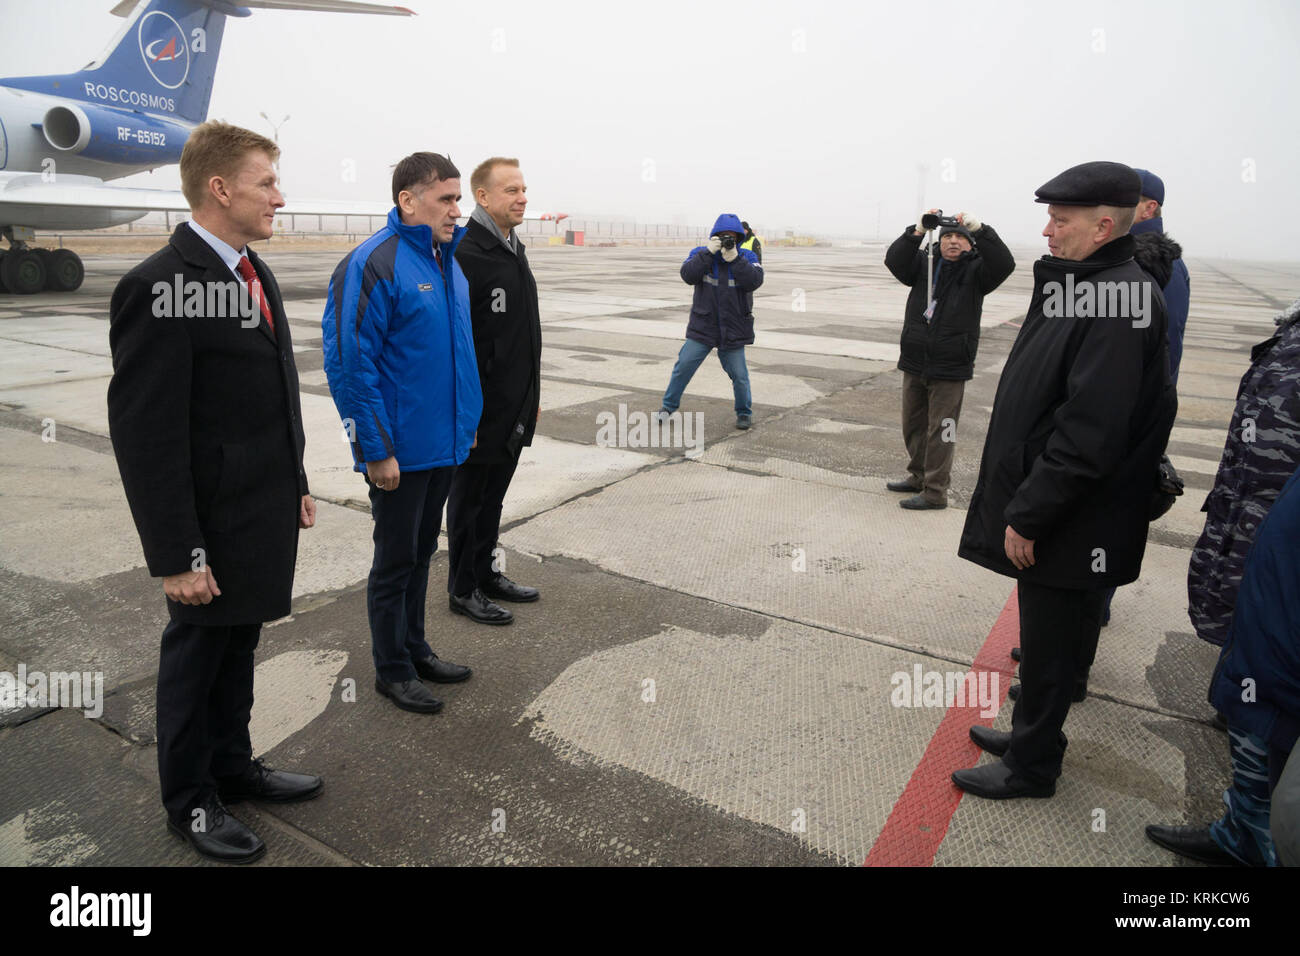 The Expedition 46-47 crewmembers arrive in Baikonur, Kazakhstan Nov. 30 for final pre-launch training following - Stock Image